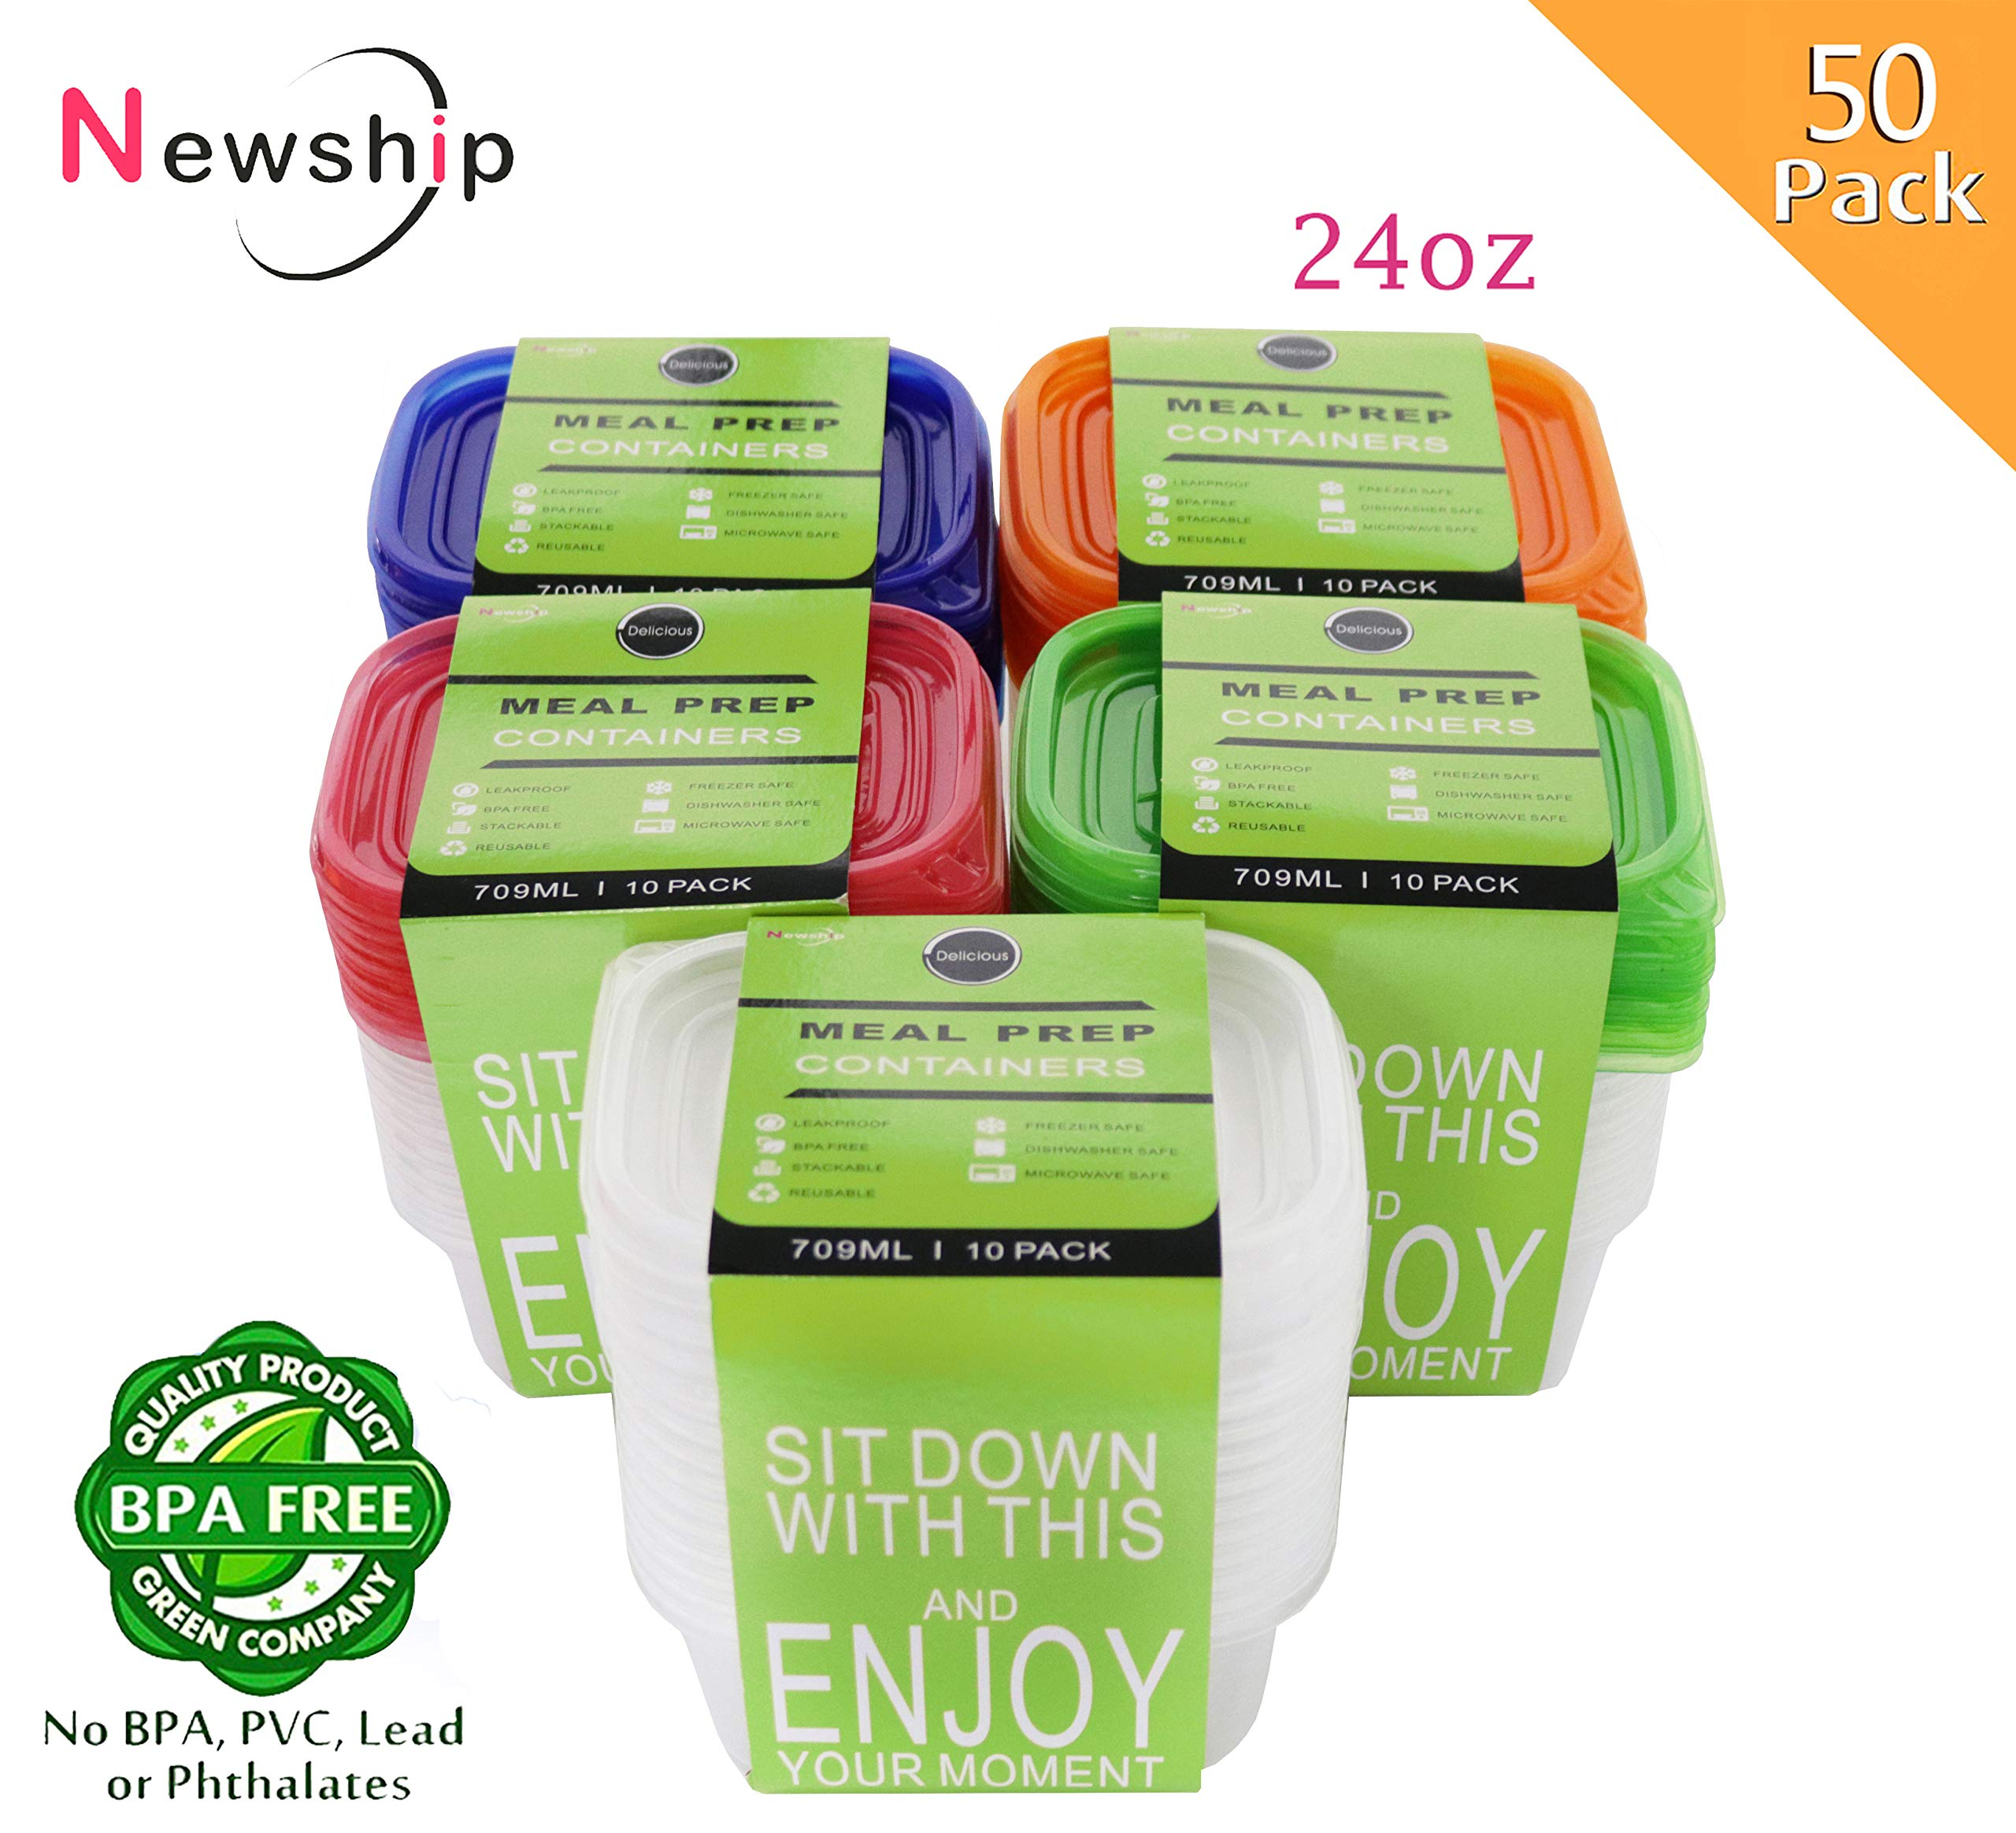 [50Pack,24oz] NewShip Plastic Food Storage Containers with Easy Open Lids Colorful Kids Lunch Meal Prep Containers BPA Free Bento Lunch Box Containers Leftover Food Prep Containers Freezer Containers